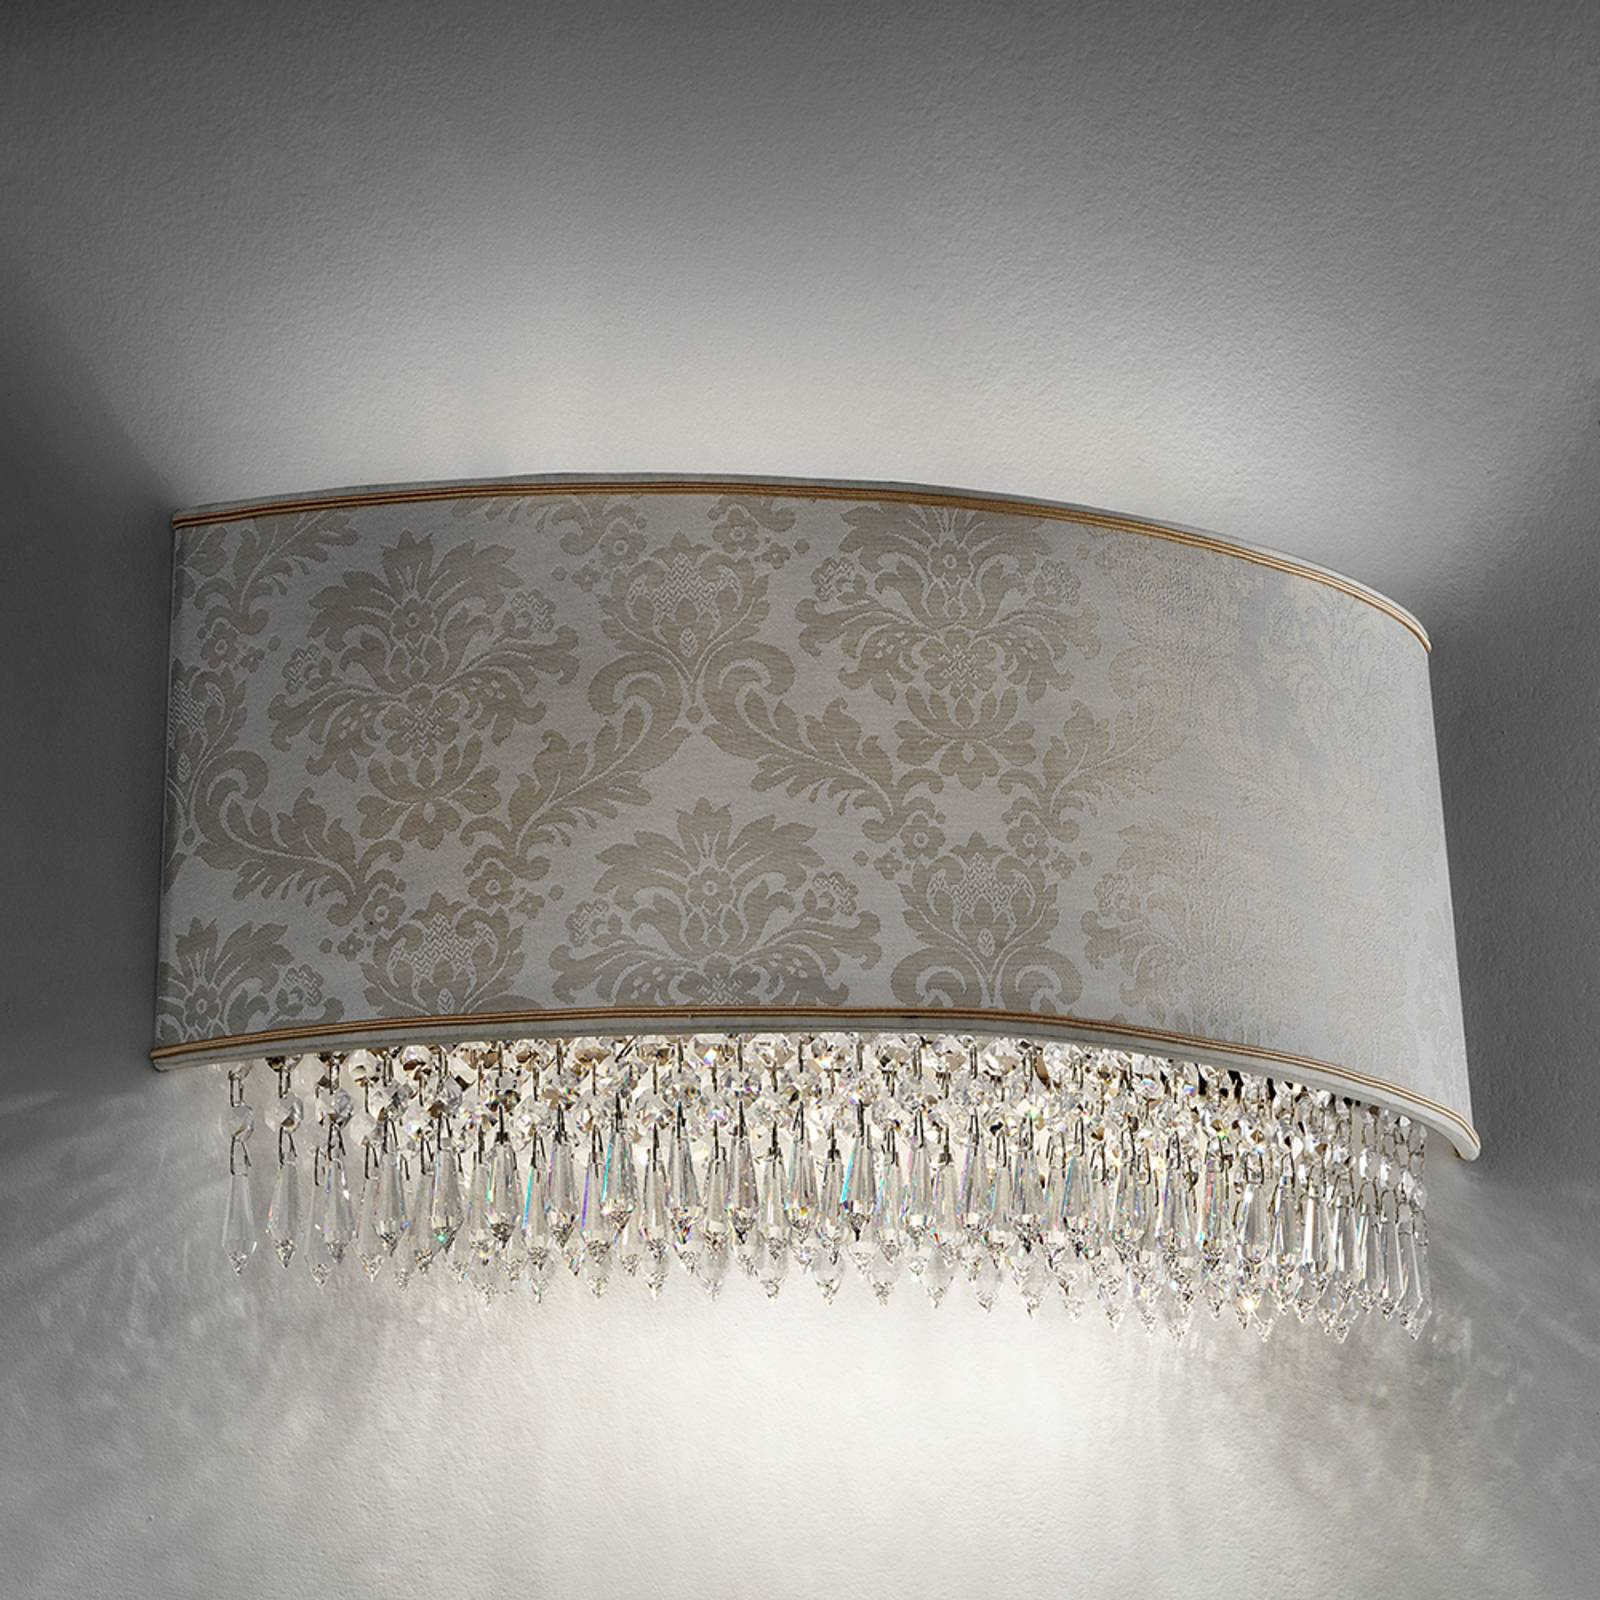 50 cm wide wall lamp Glassé with damask lampshade from Masiero